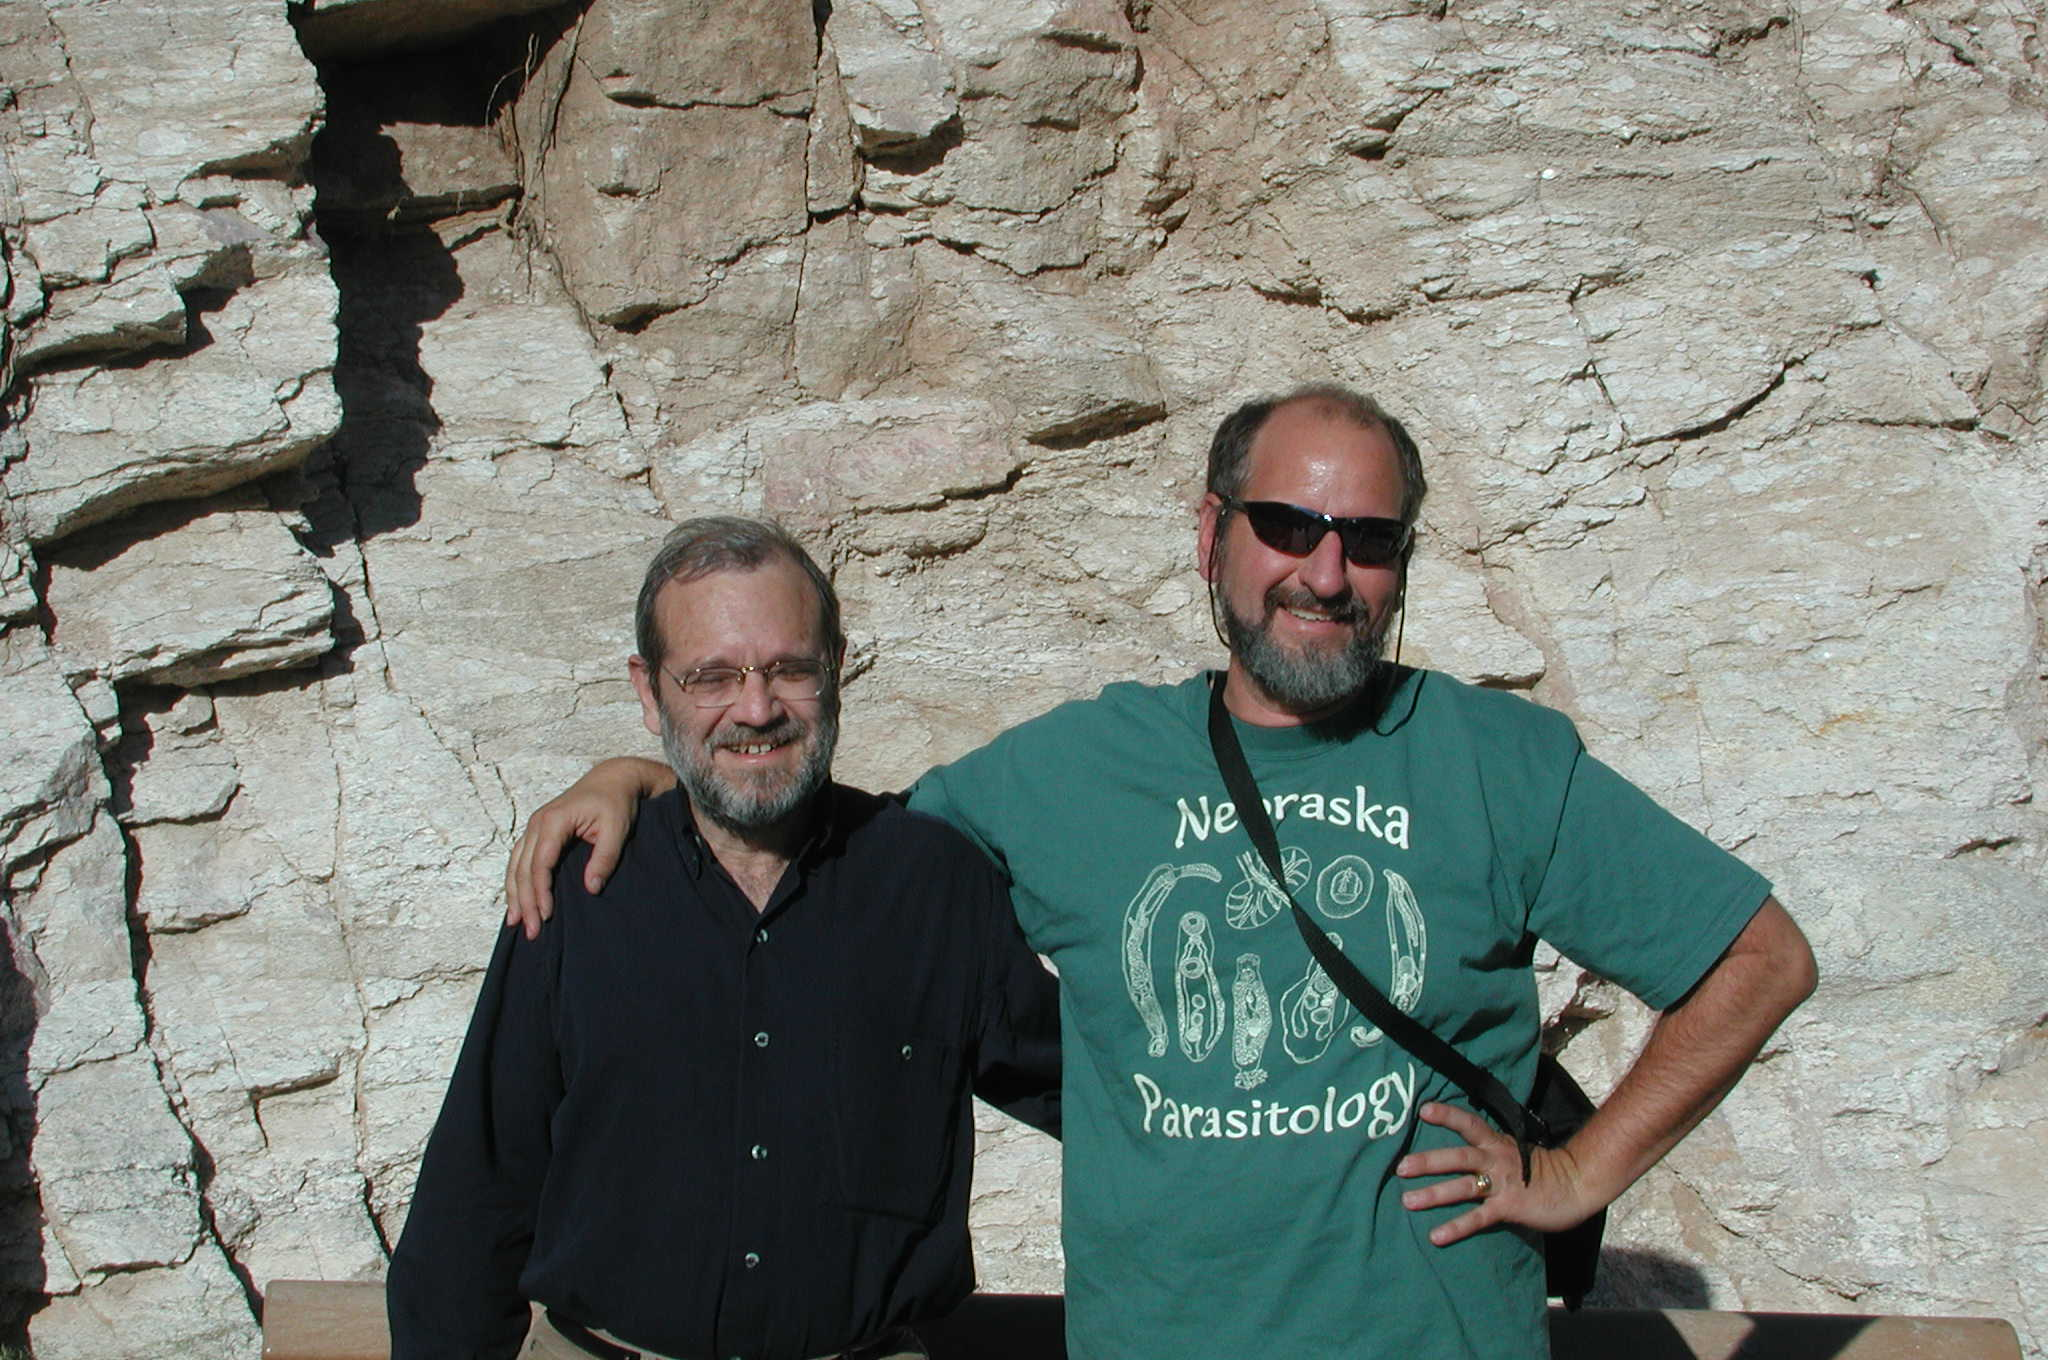 Karl Reinhard (right) with co-author and research partner Adauto Araújo exploring rock shelters in the Lower Pecos Canyonlands.